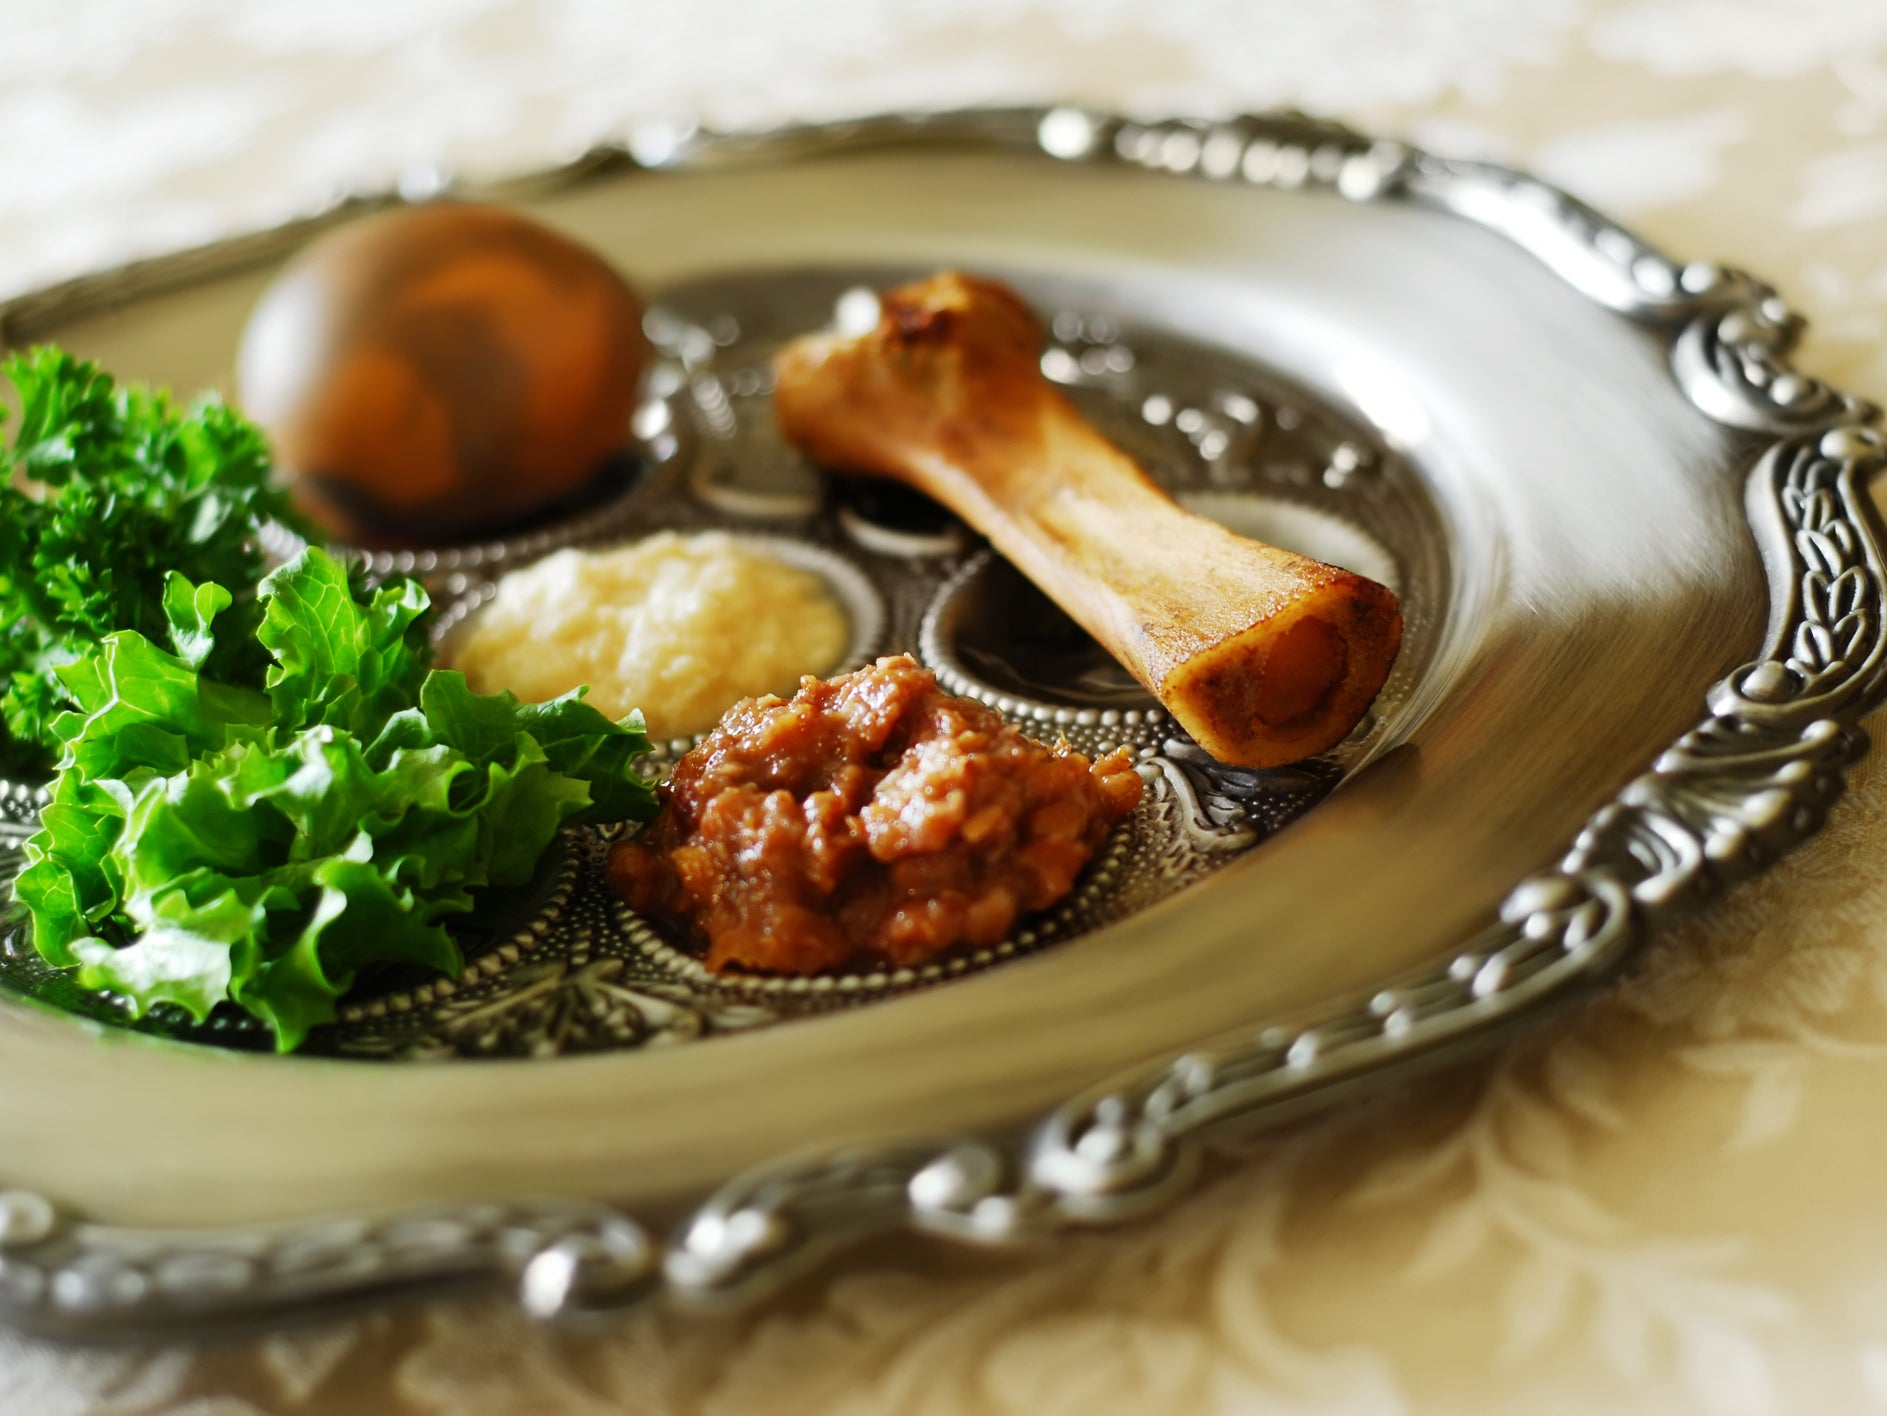 Passover 2019: The meaning of the foods eaten during the Jewish festival 1